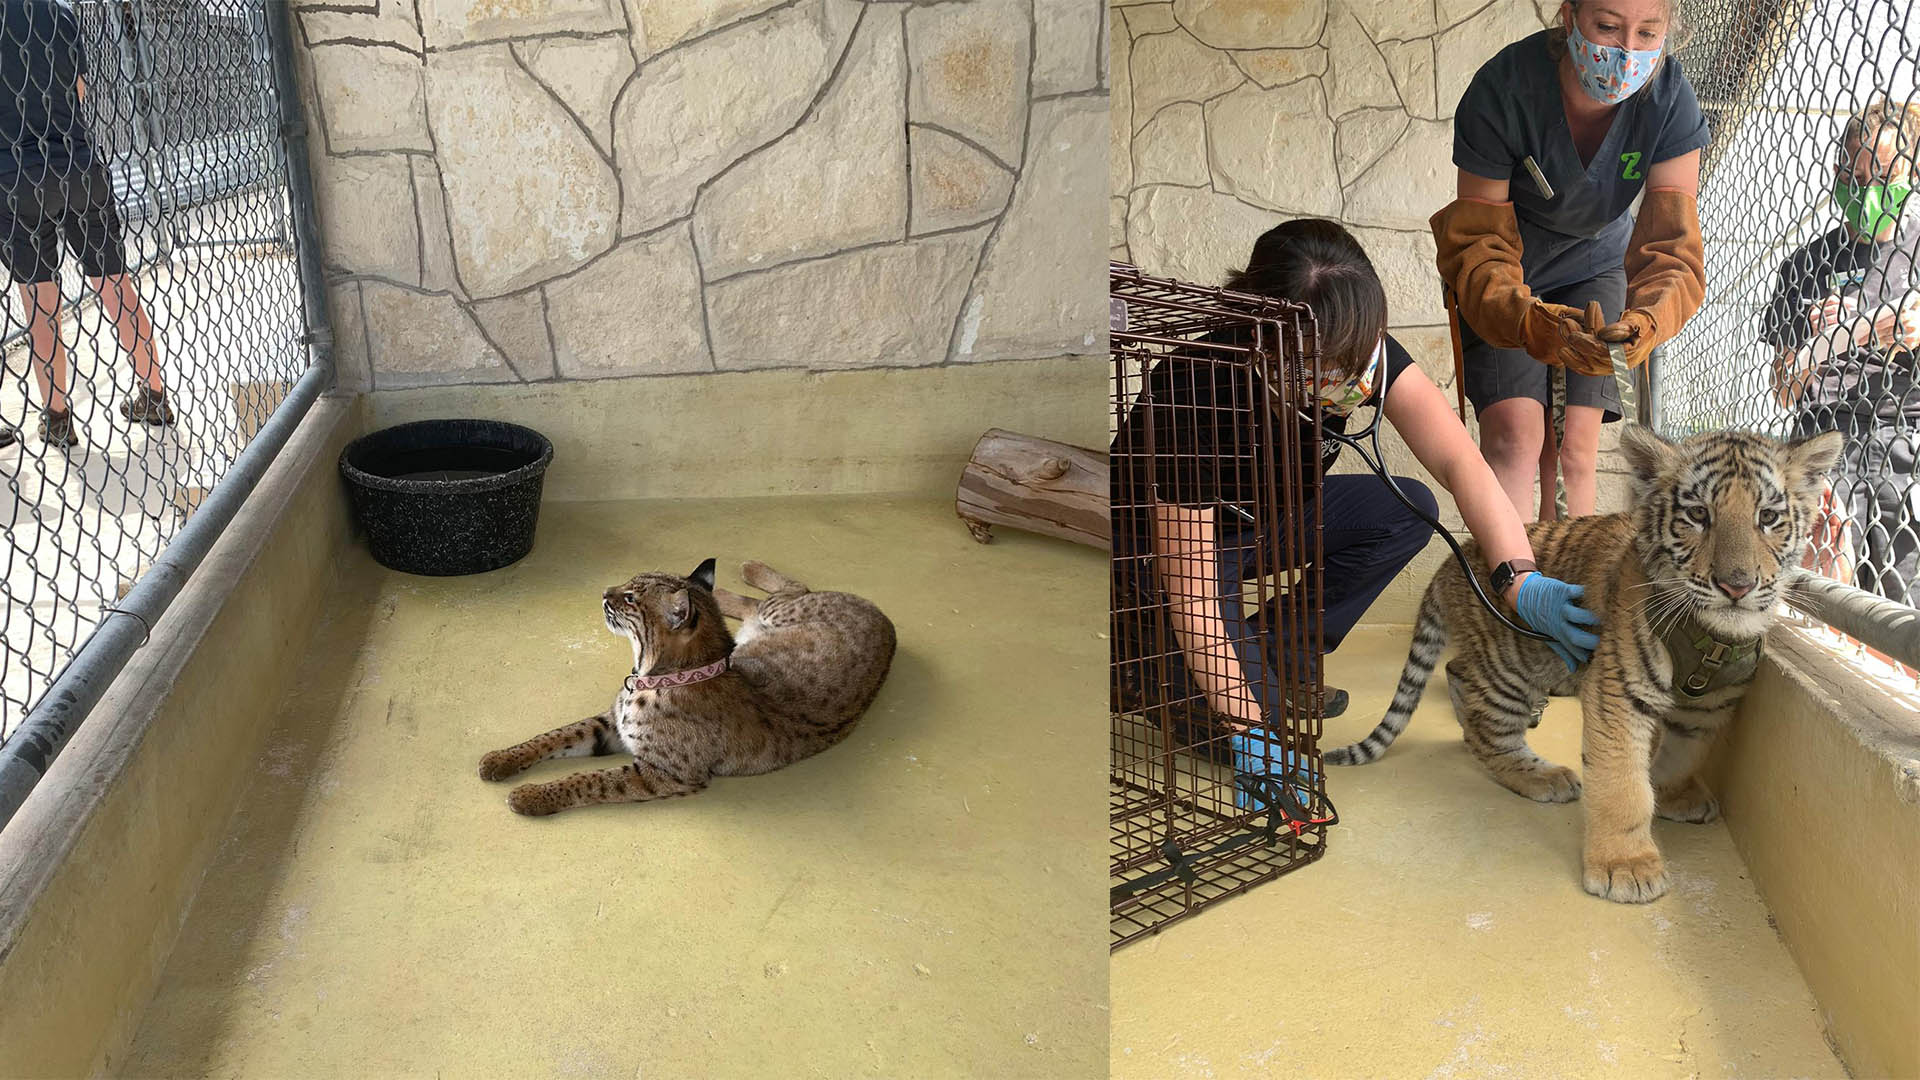 Tiger cub and bobcat seized from home in Bexar County (San Antonio Zoo Photos)